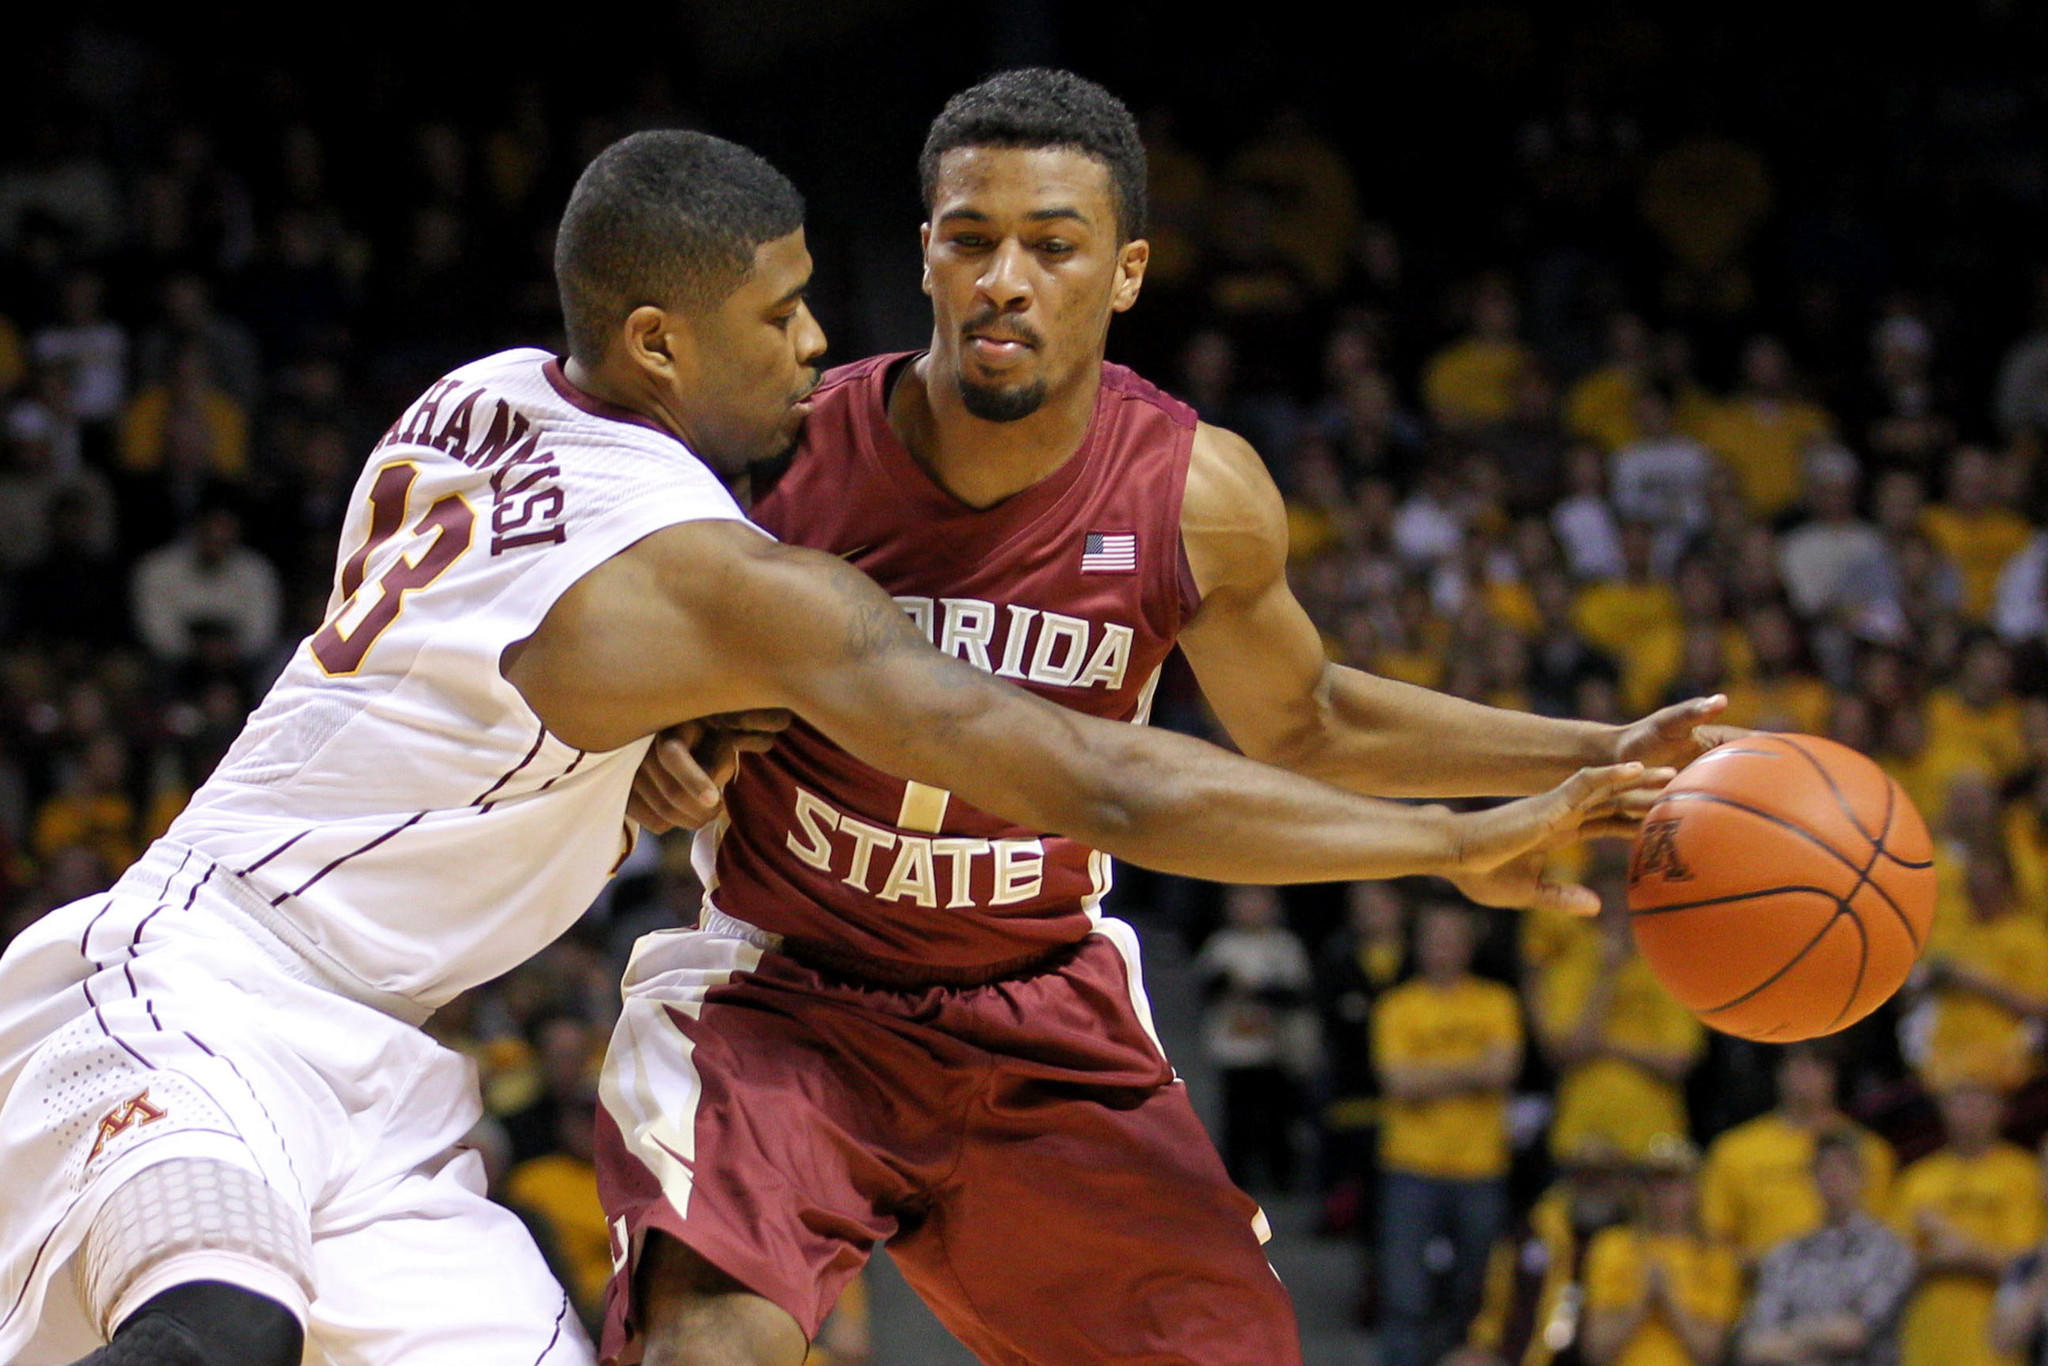 Minnesota's Maverick Ahanmisi pokes the ball away from Florida State's Devon Bookert during the first half.